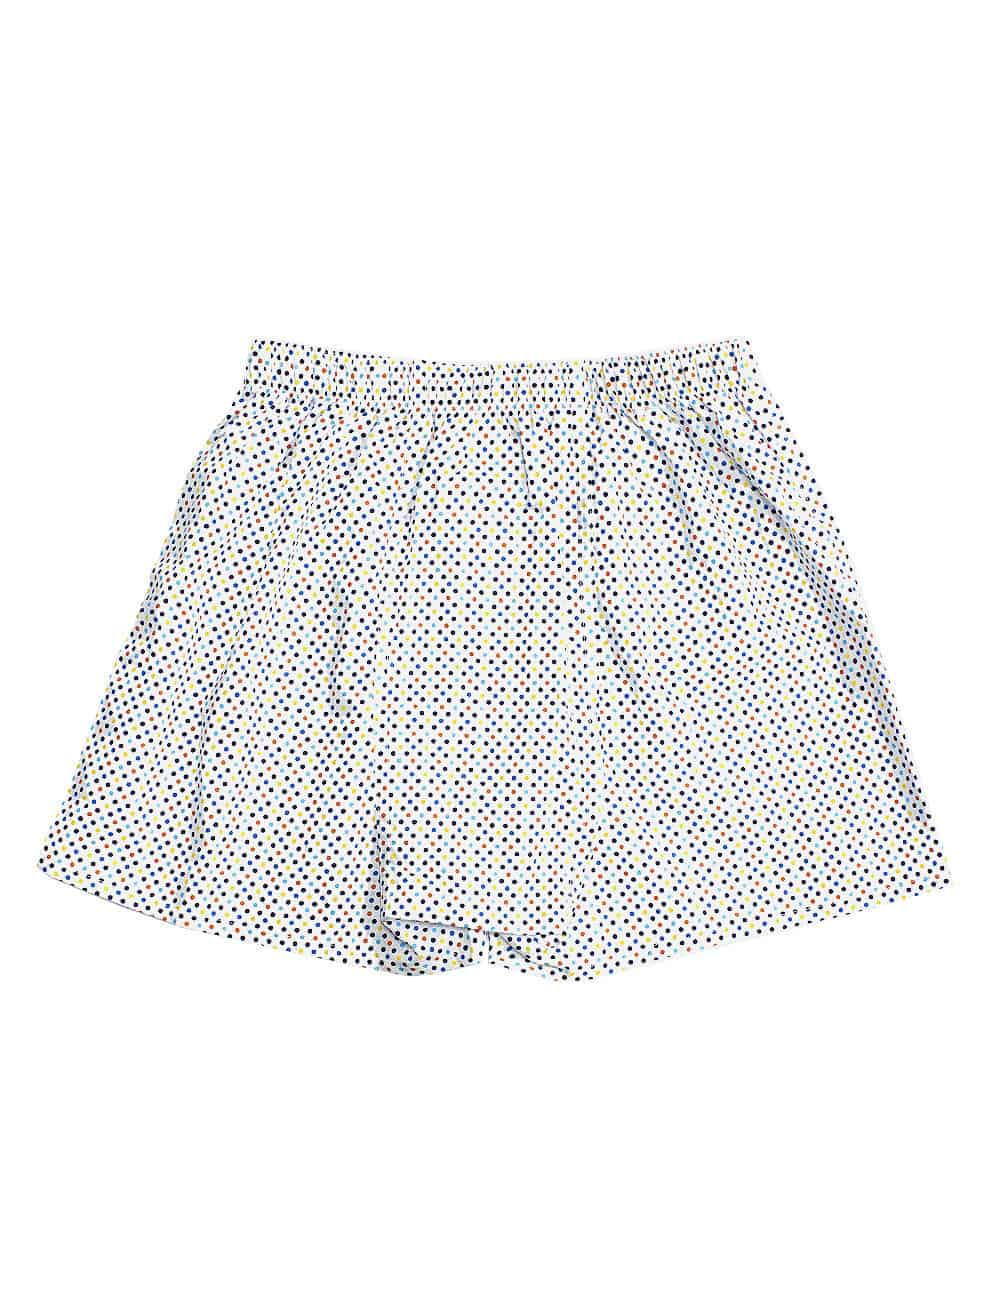 100% Premium Cotton White with Multi Colour Polka Dots Button Fly Boxer Shorts with Silky Finish IW1A13.1